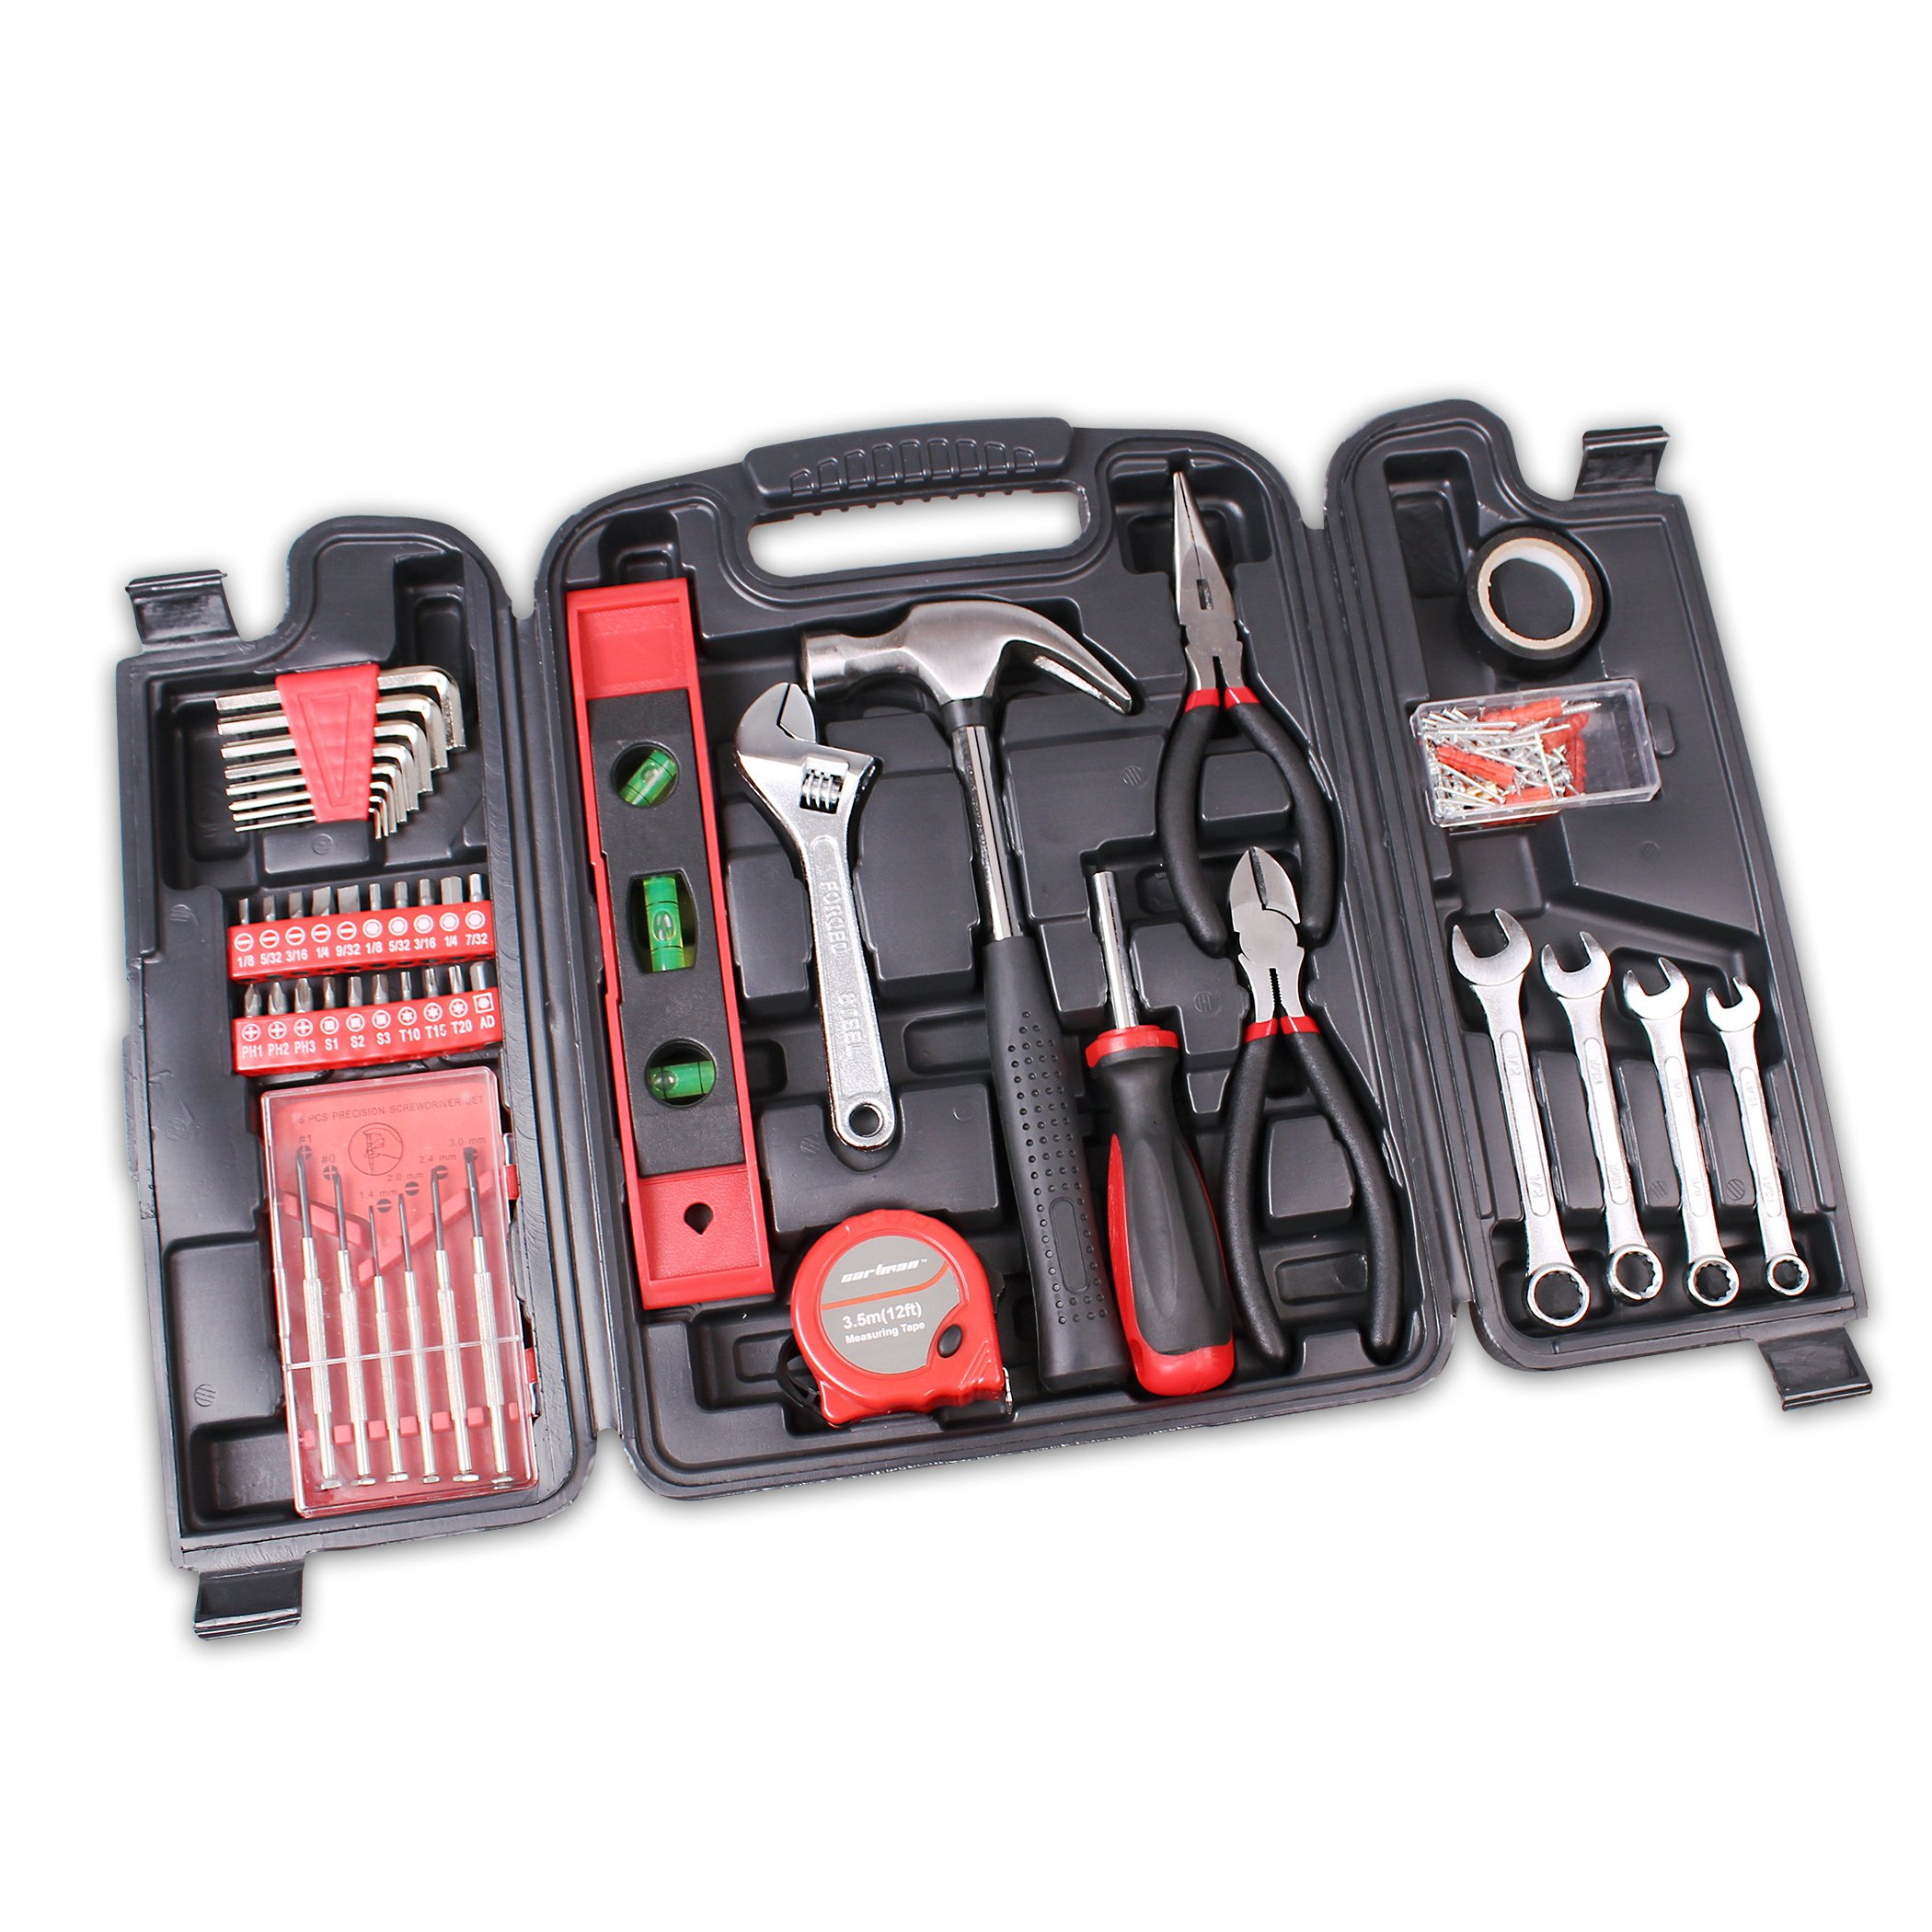 CARTMAN 136-Piece Tool Set - General Household Hand Tool Kit with Plastic Toolbox Storage Case by CARTMAN (Image #1)